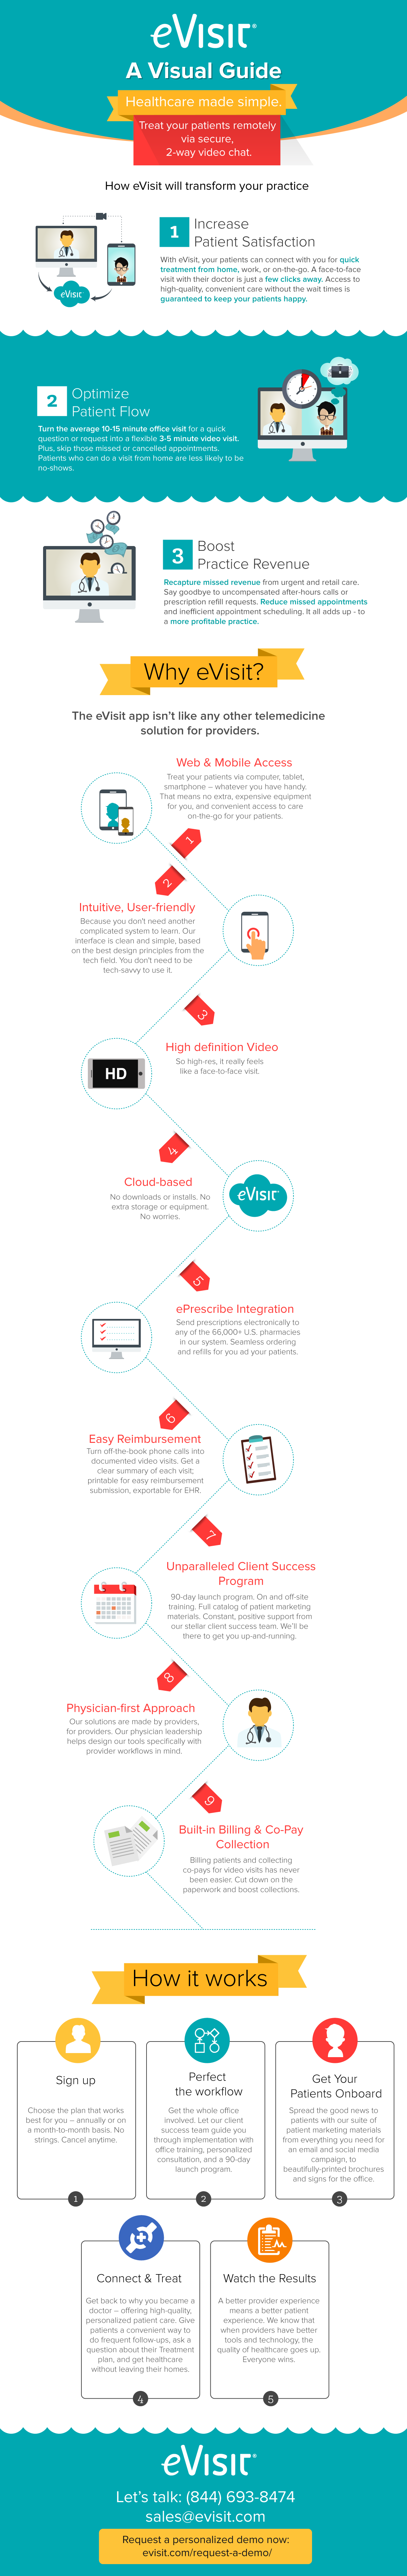 eVisit Telemedicine software Infographic